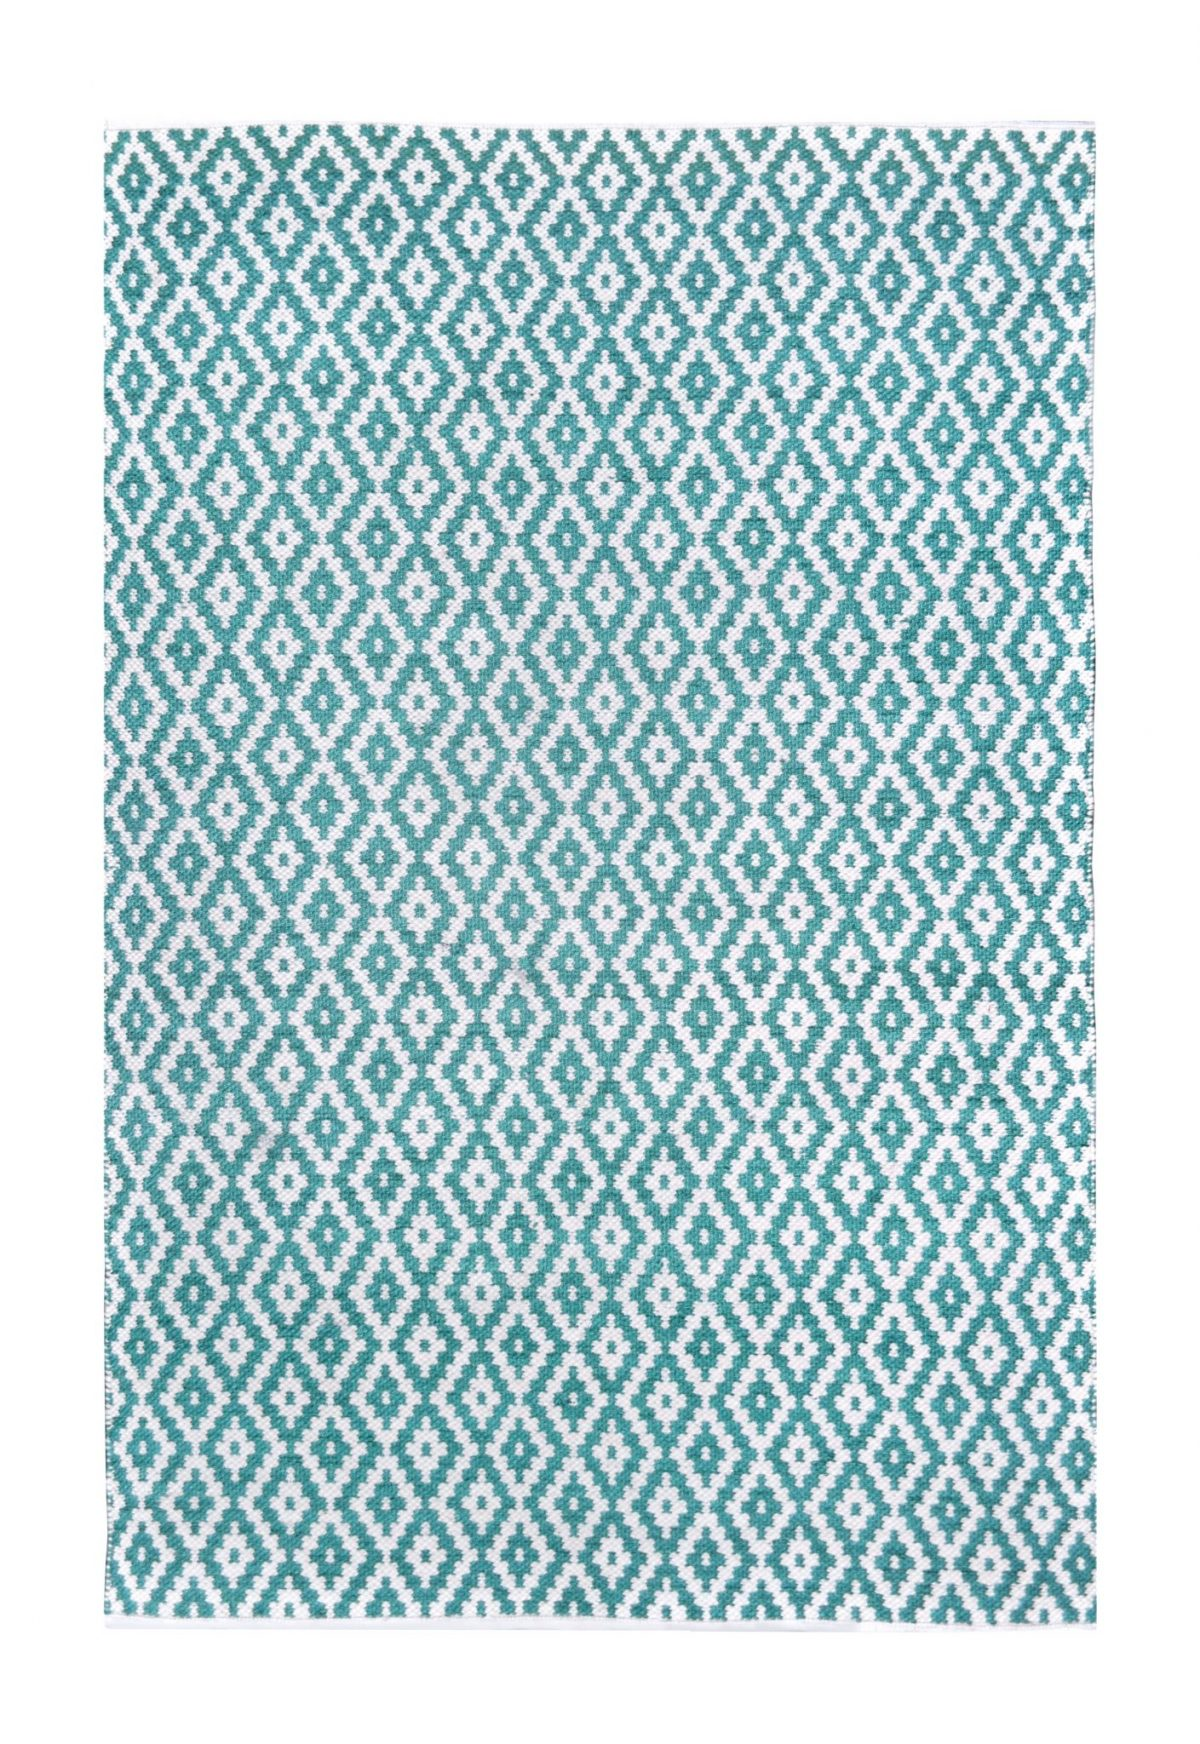 Green Label design 53 turquoise